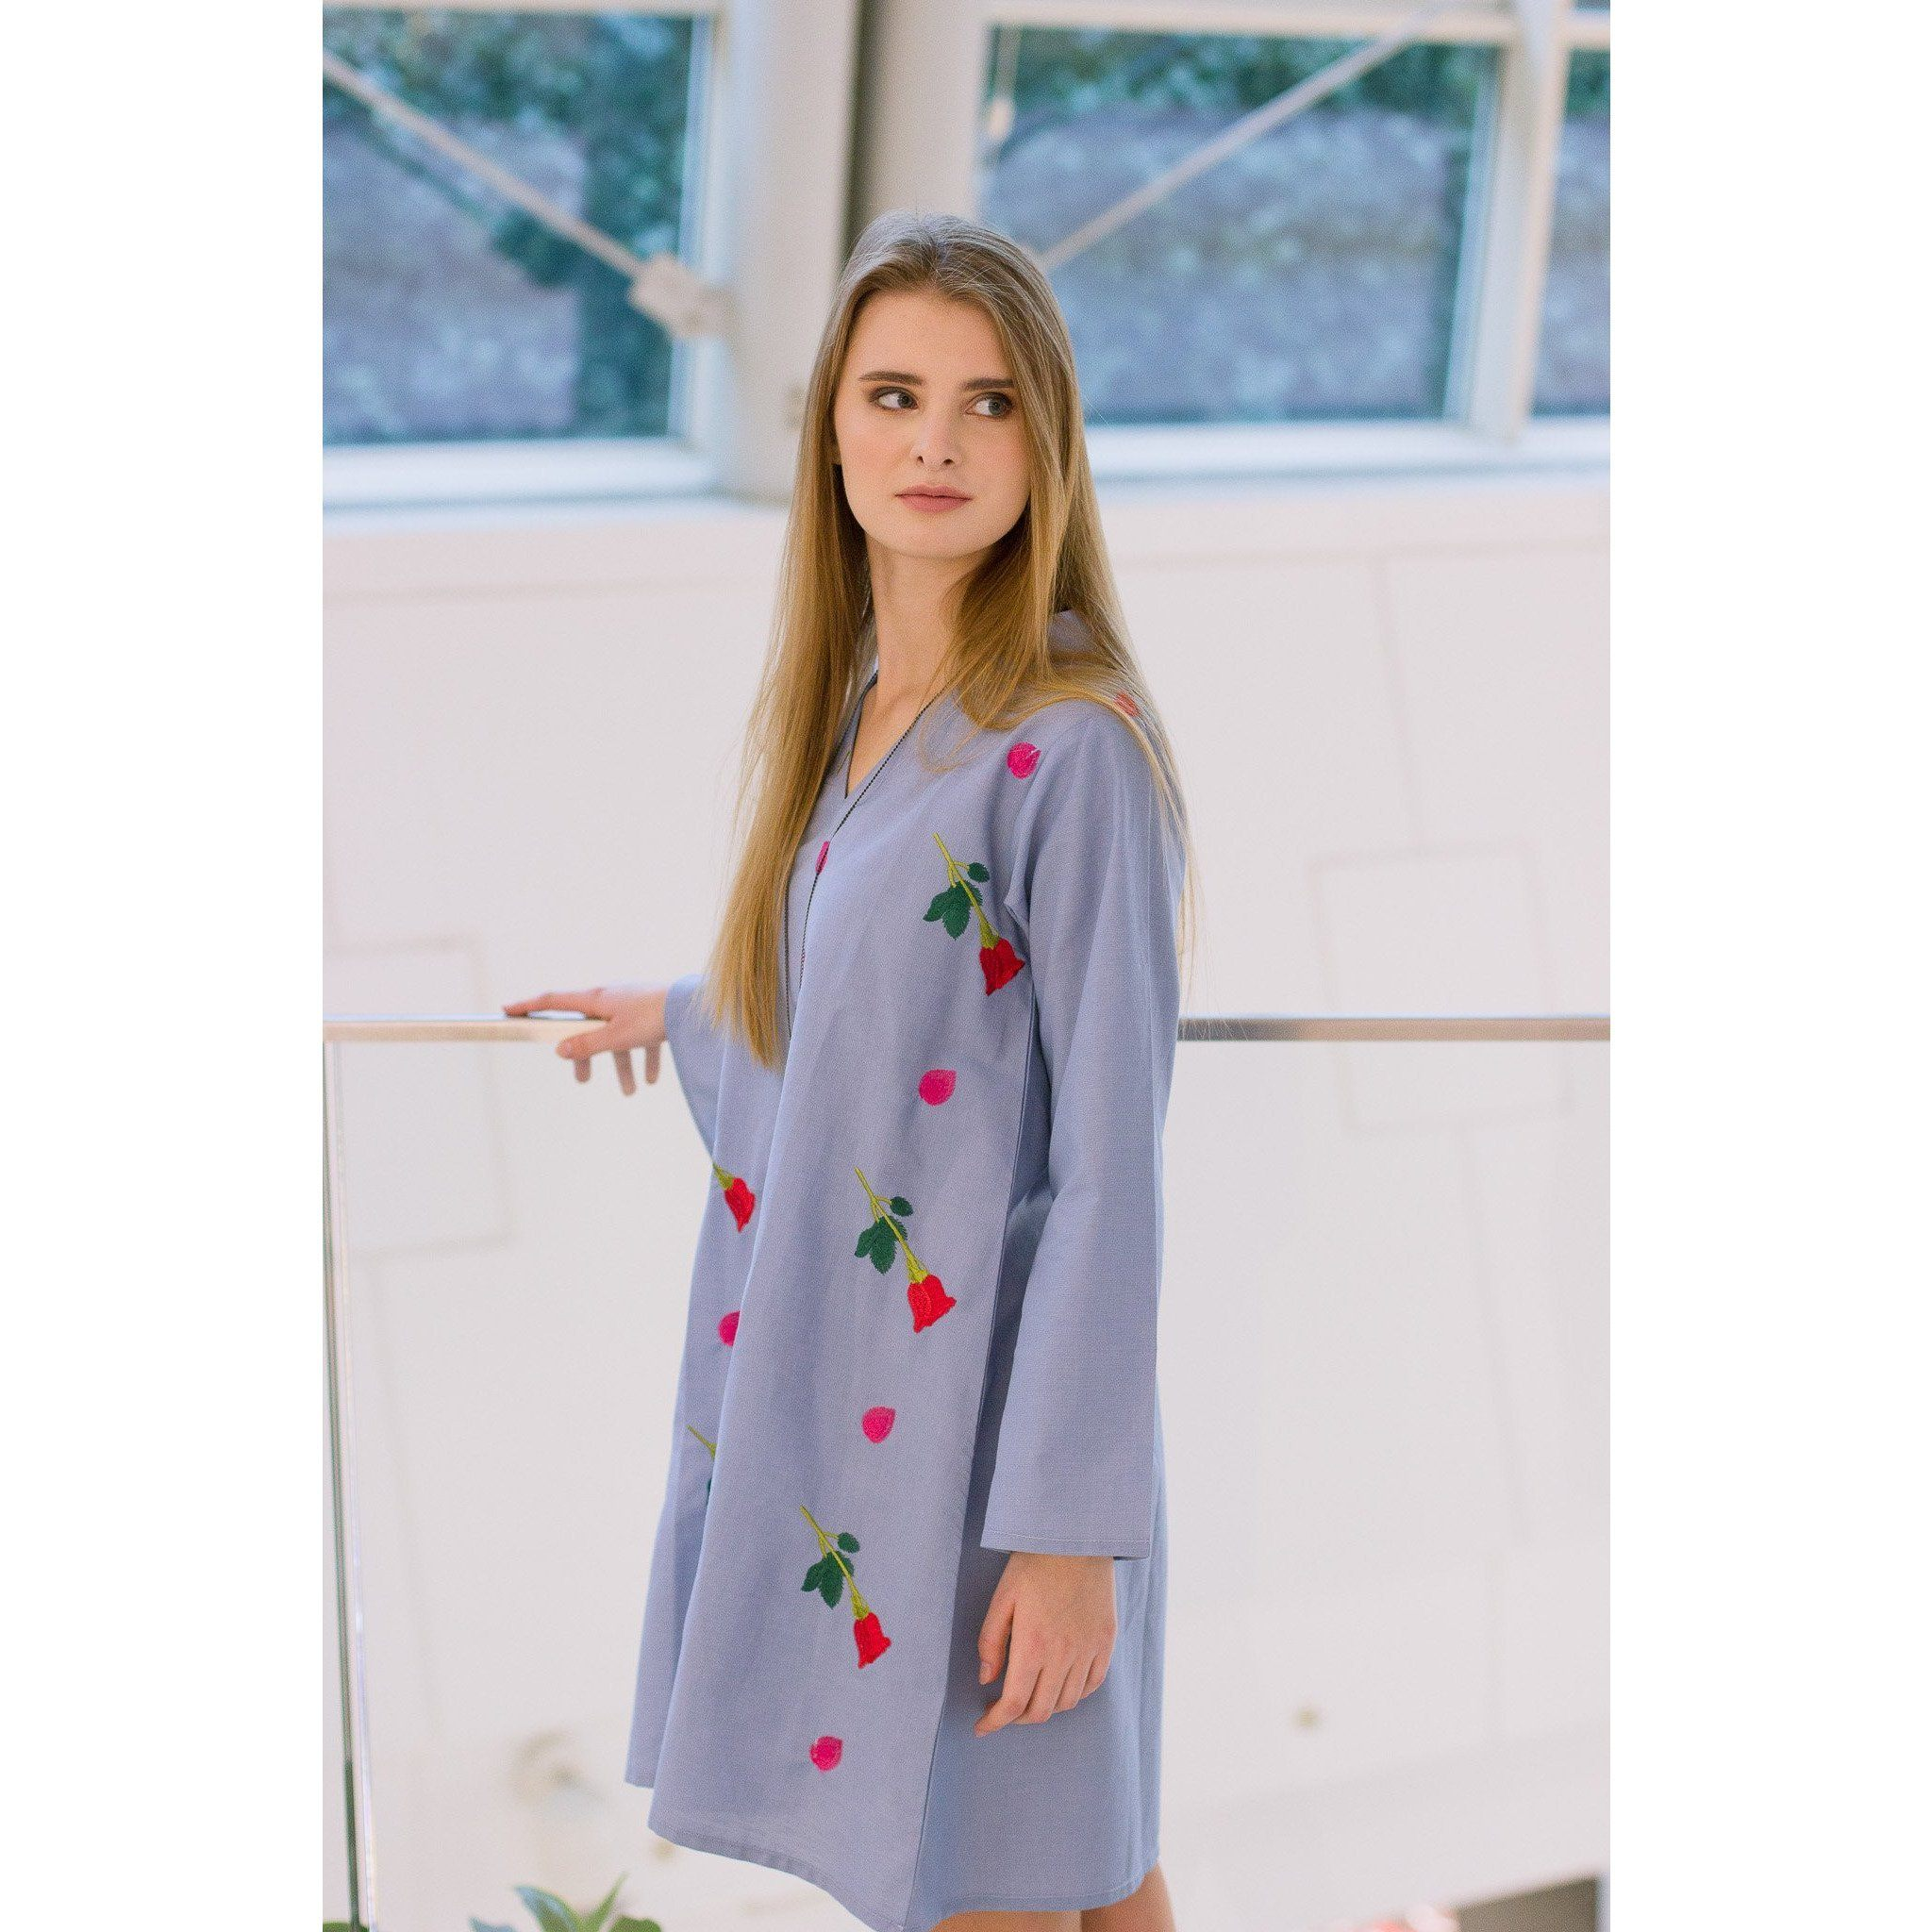 A Line Rose n Patel Embroidery Soft Denim Shirt - Chilgozay Clothing